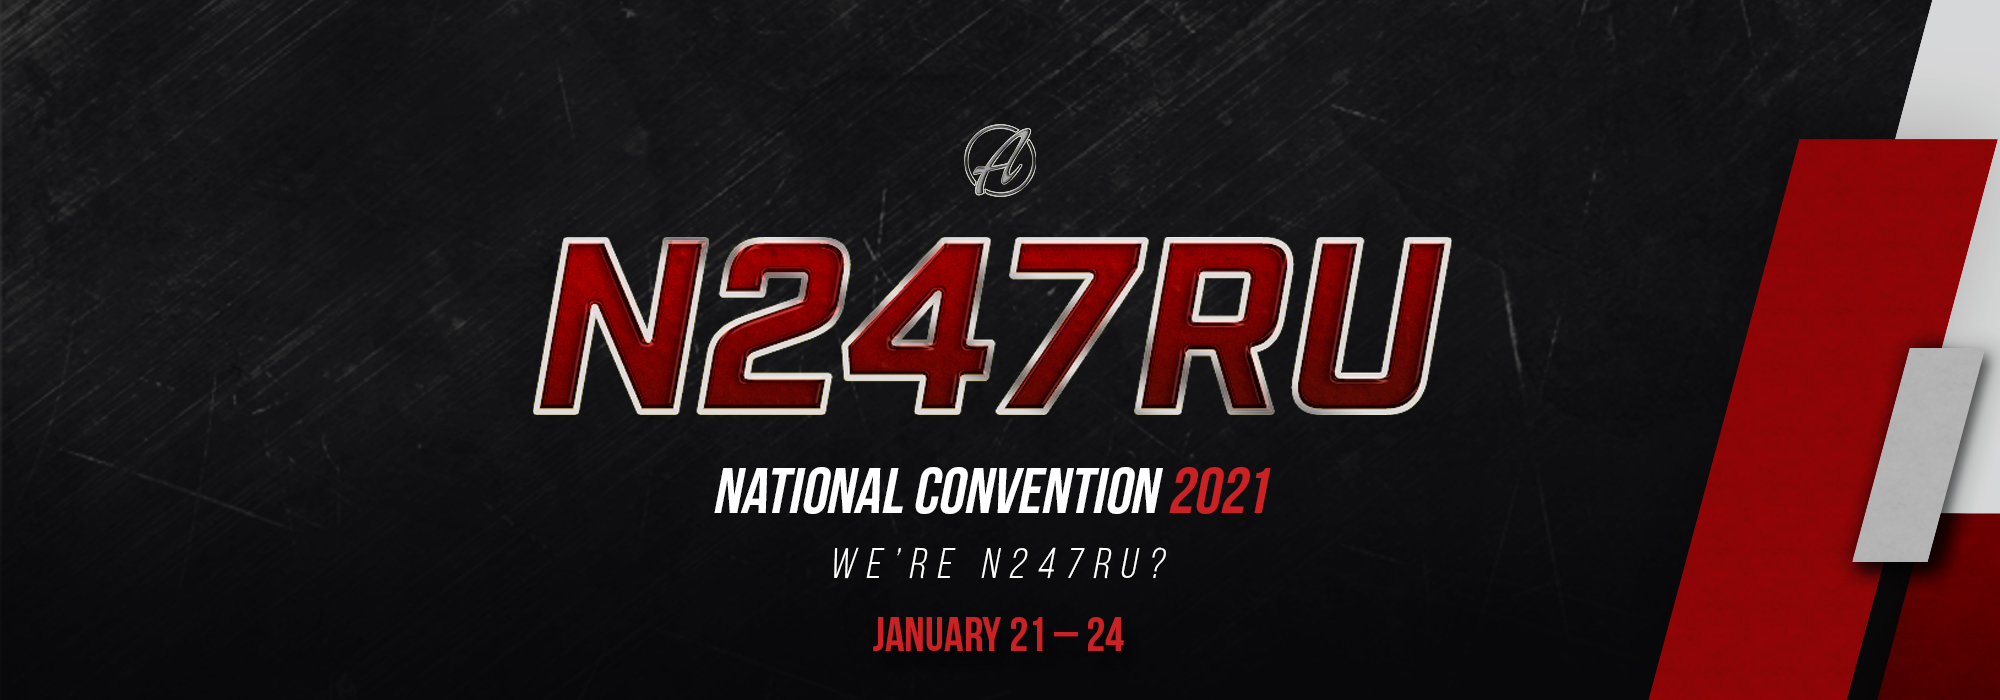 2021 National Convention